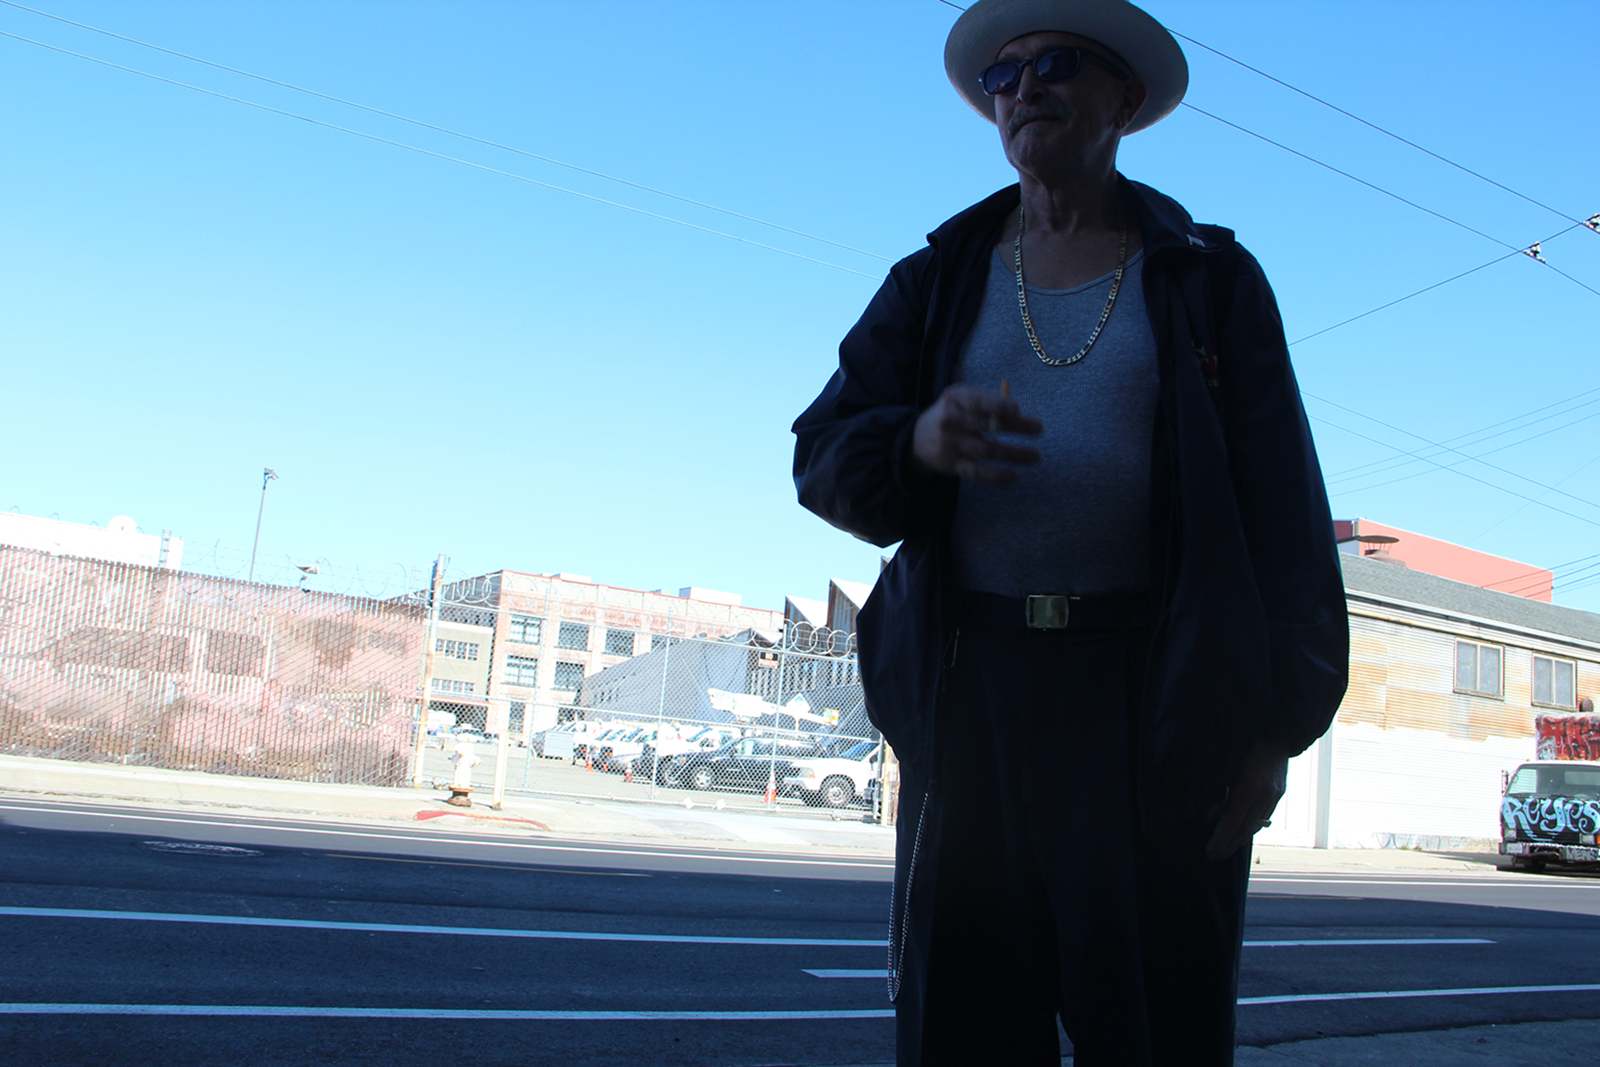 An older man stands against an urban backdrop and blue morning sky.